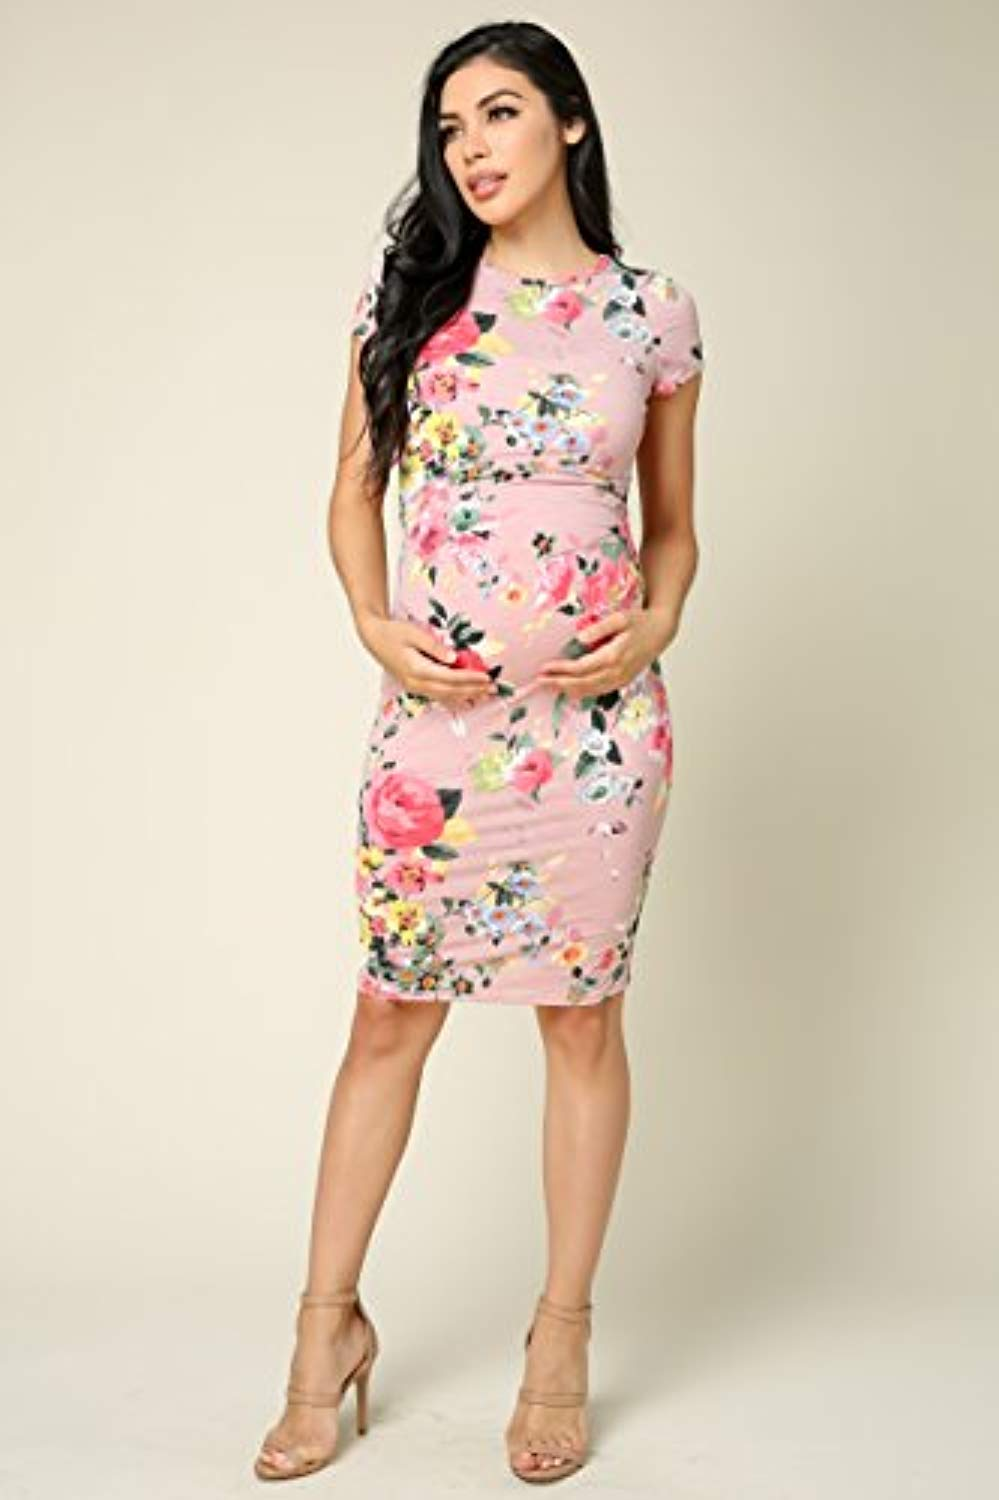 Pink Bodycon Baby Shower Dress - Mommylicious